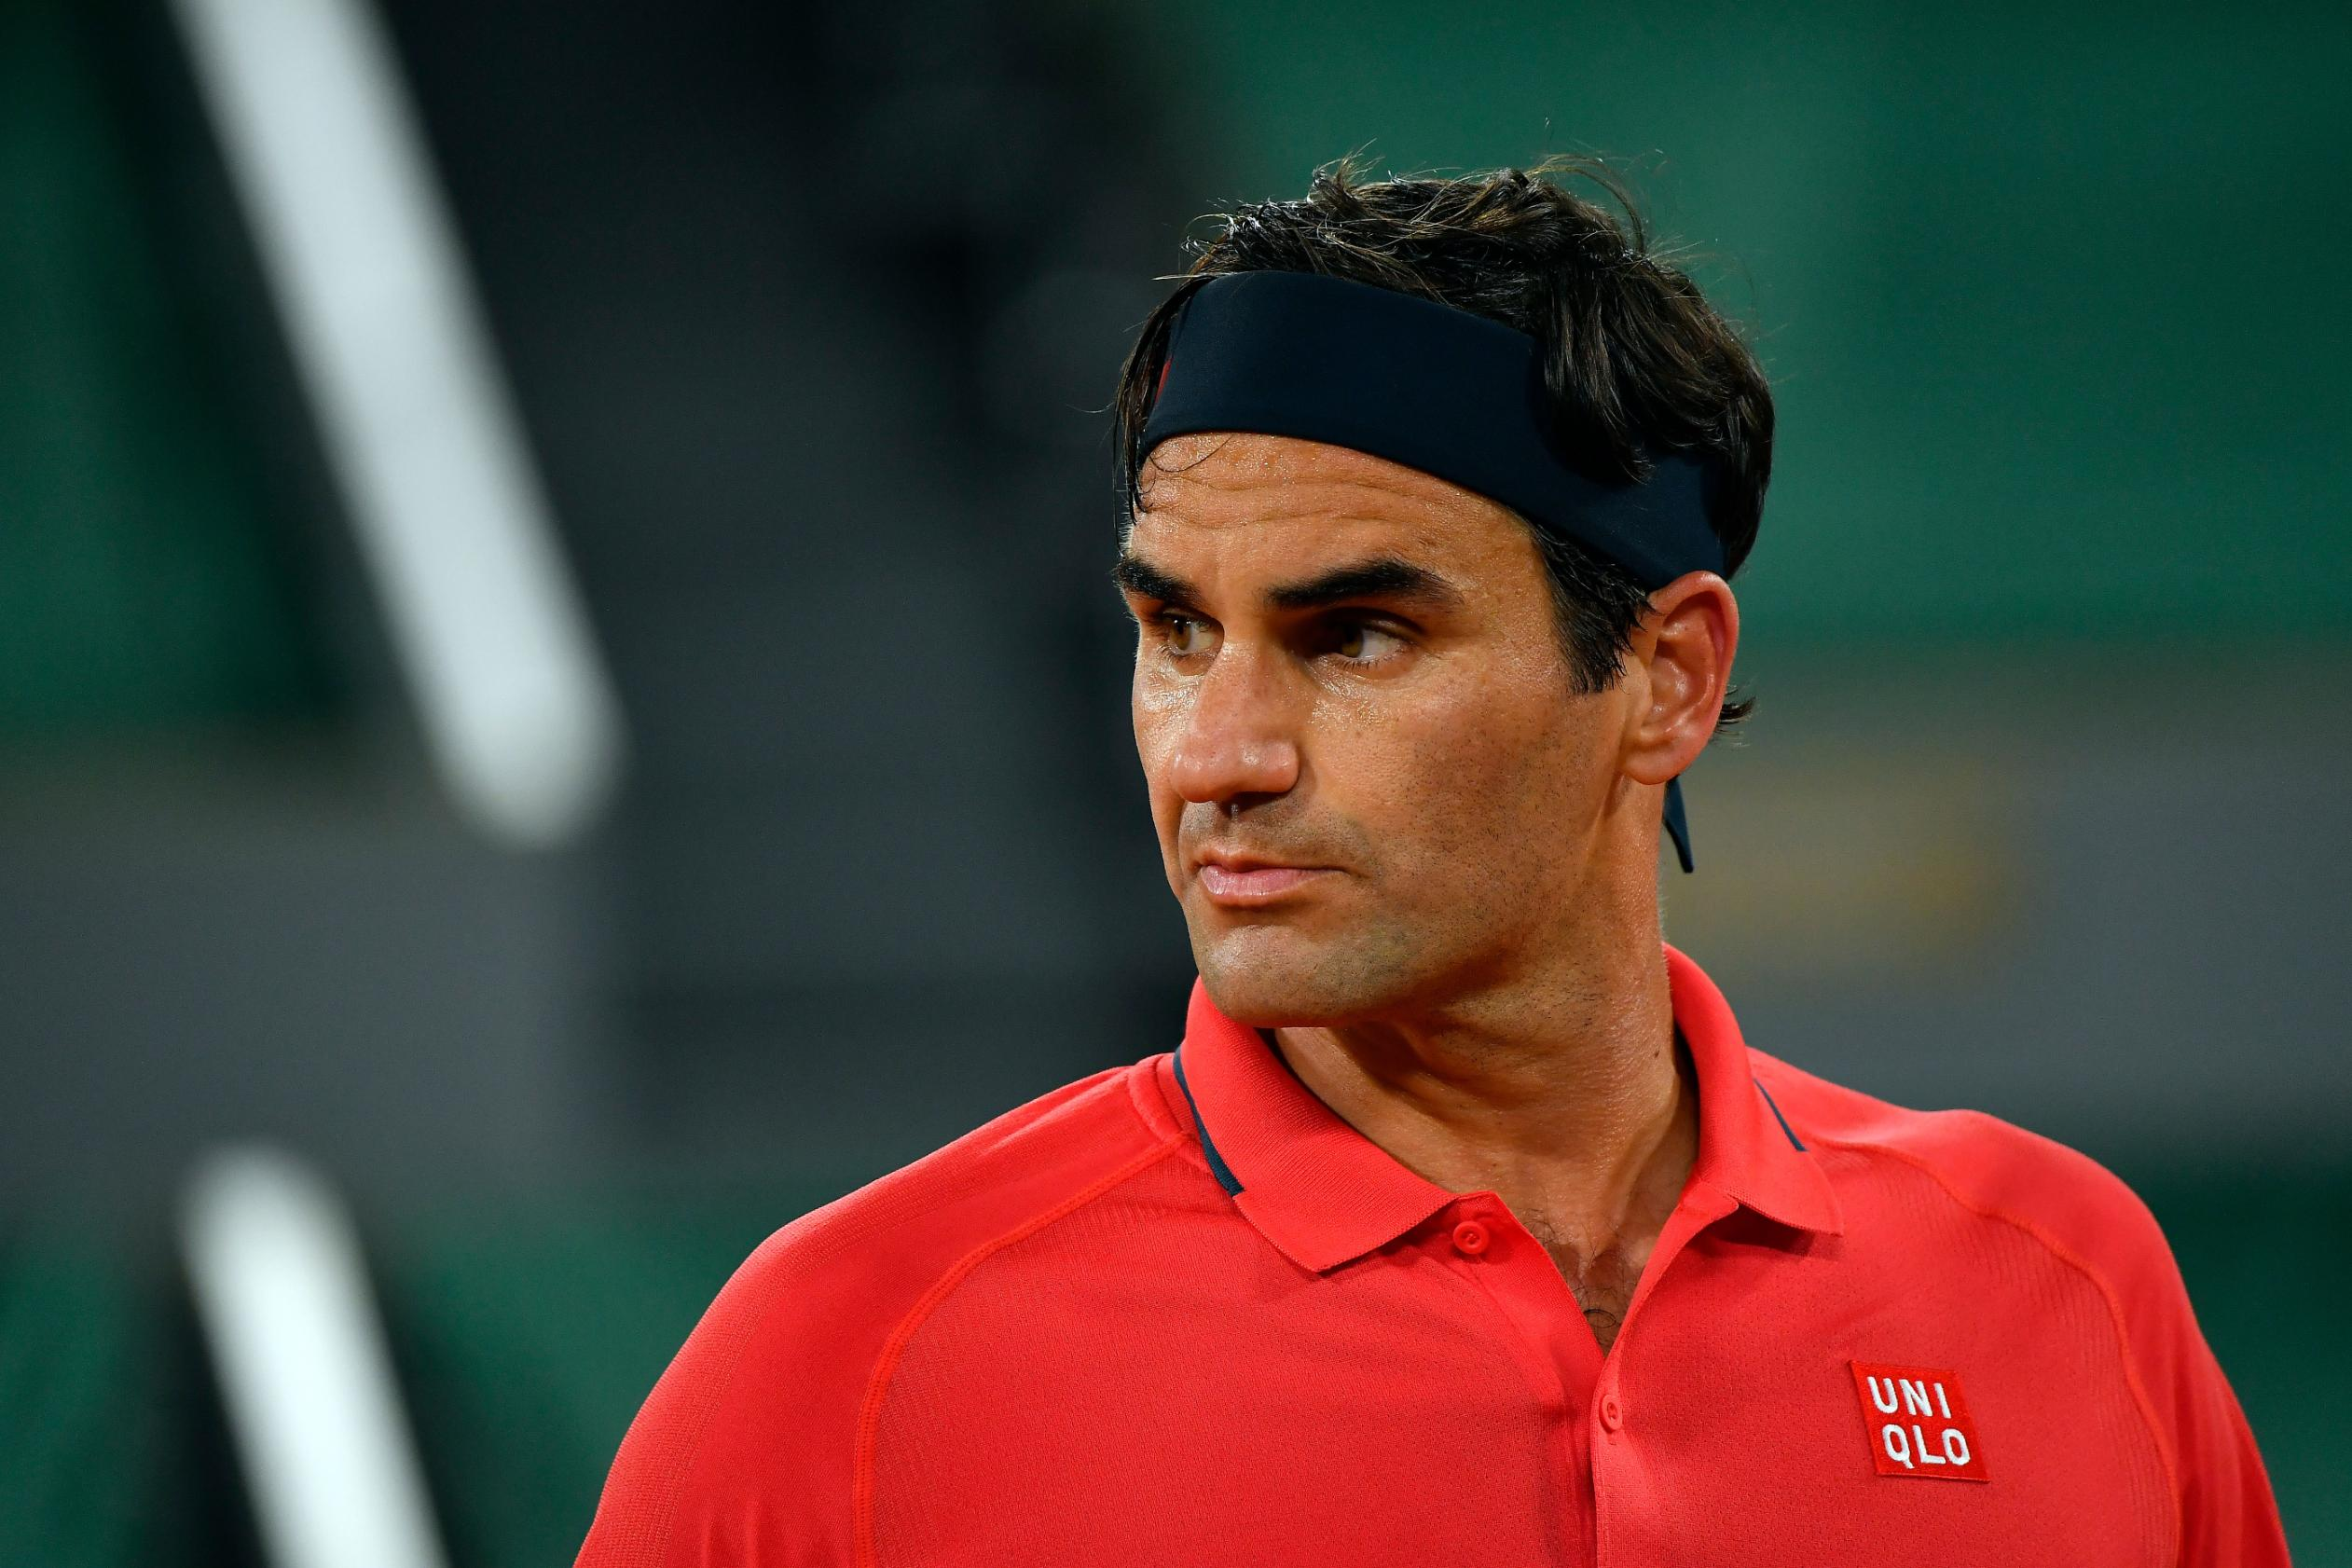 Roger Federer withdraws from French Open over knee concerns